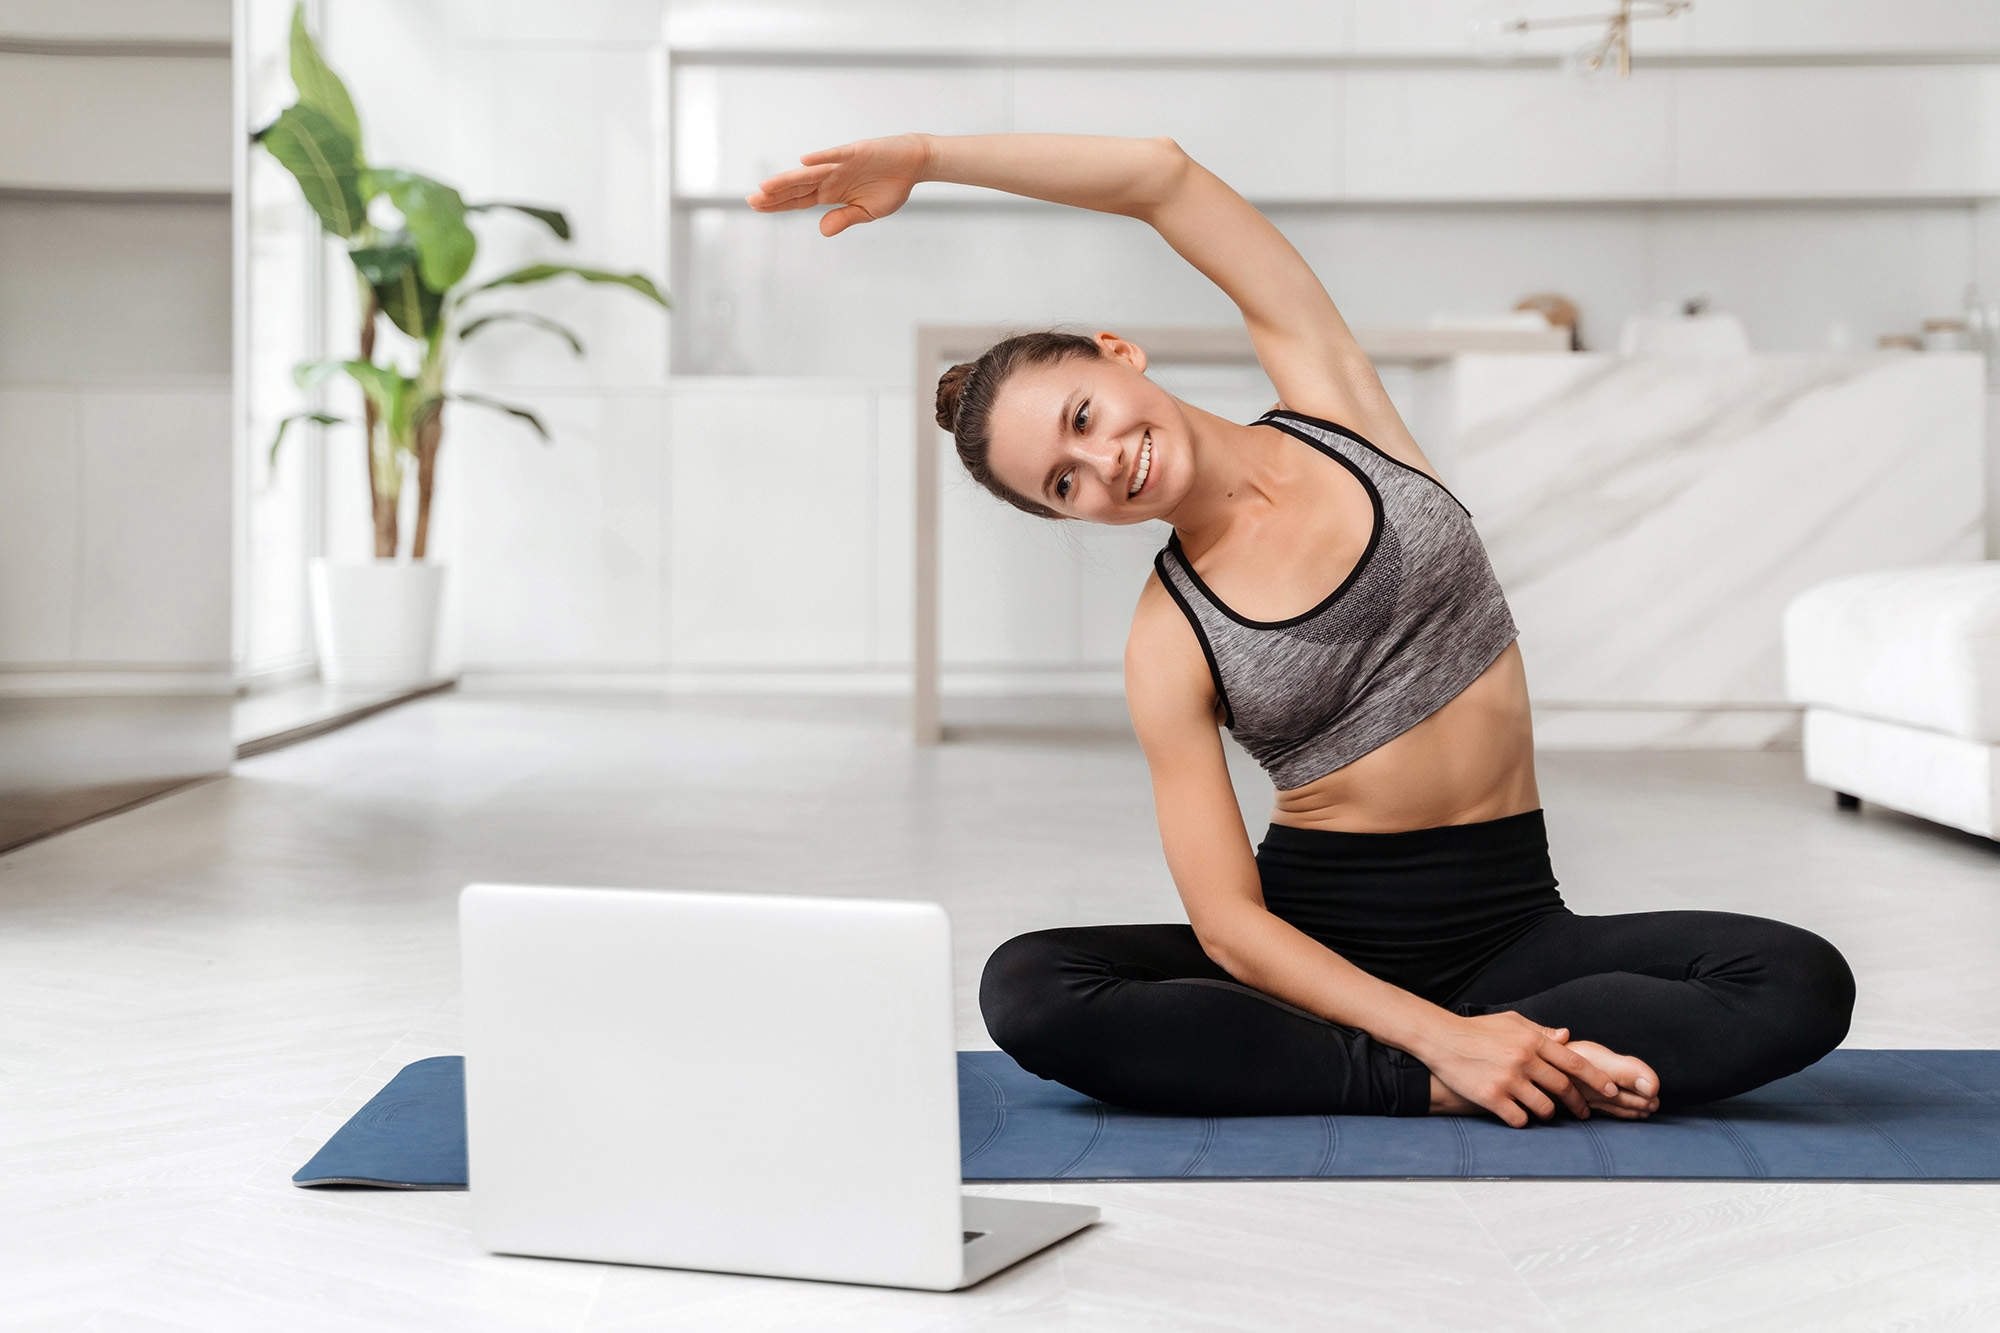 A pretty young woman in a gray sports bra and black leggings sits cross legged on a mat in front of a laptop practicing a virtual pilates class.